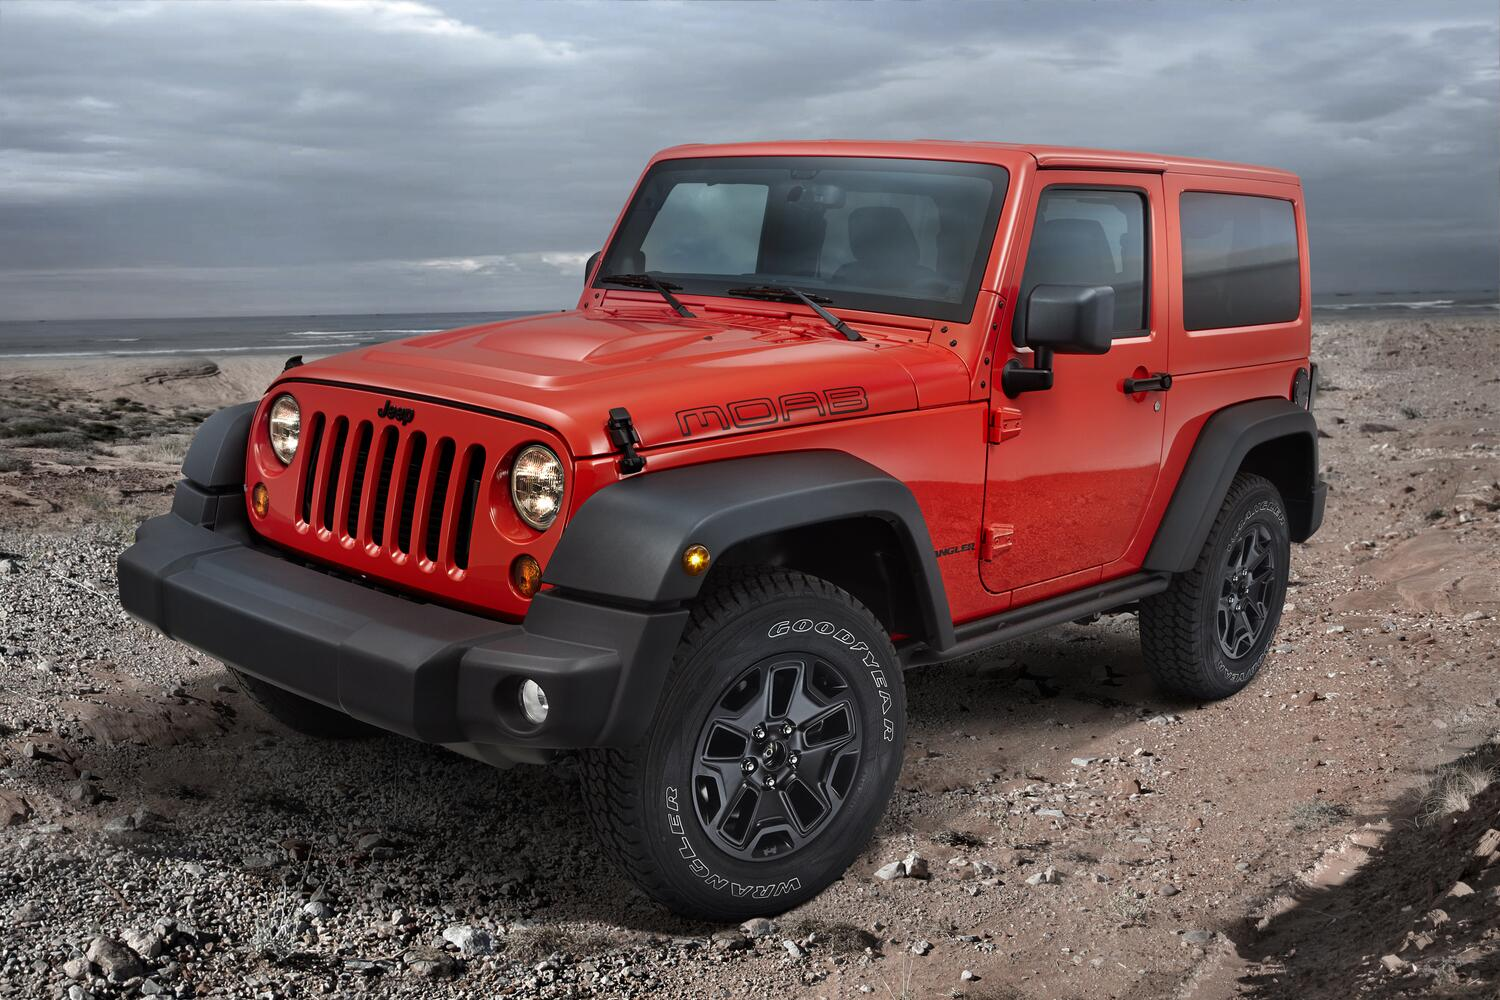 2013 Jeep Wrangler Sport Review >> 2013 Jeep Wrangler Review, Ratings, Specs, Prices, and Photos - The Car Connection